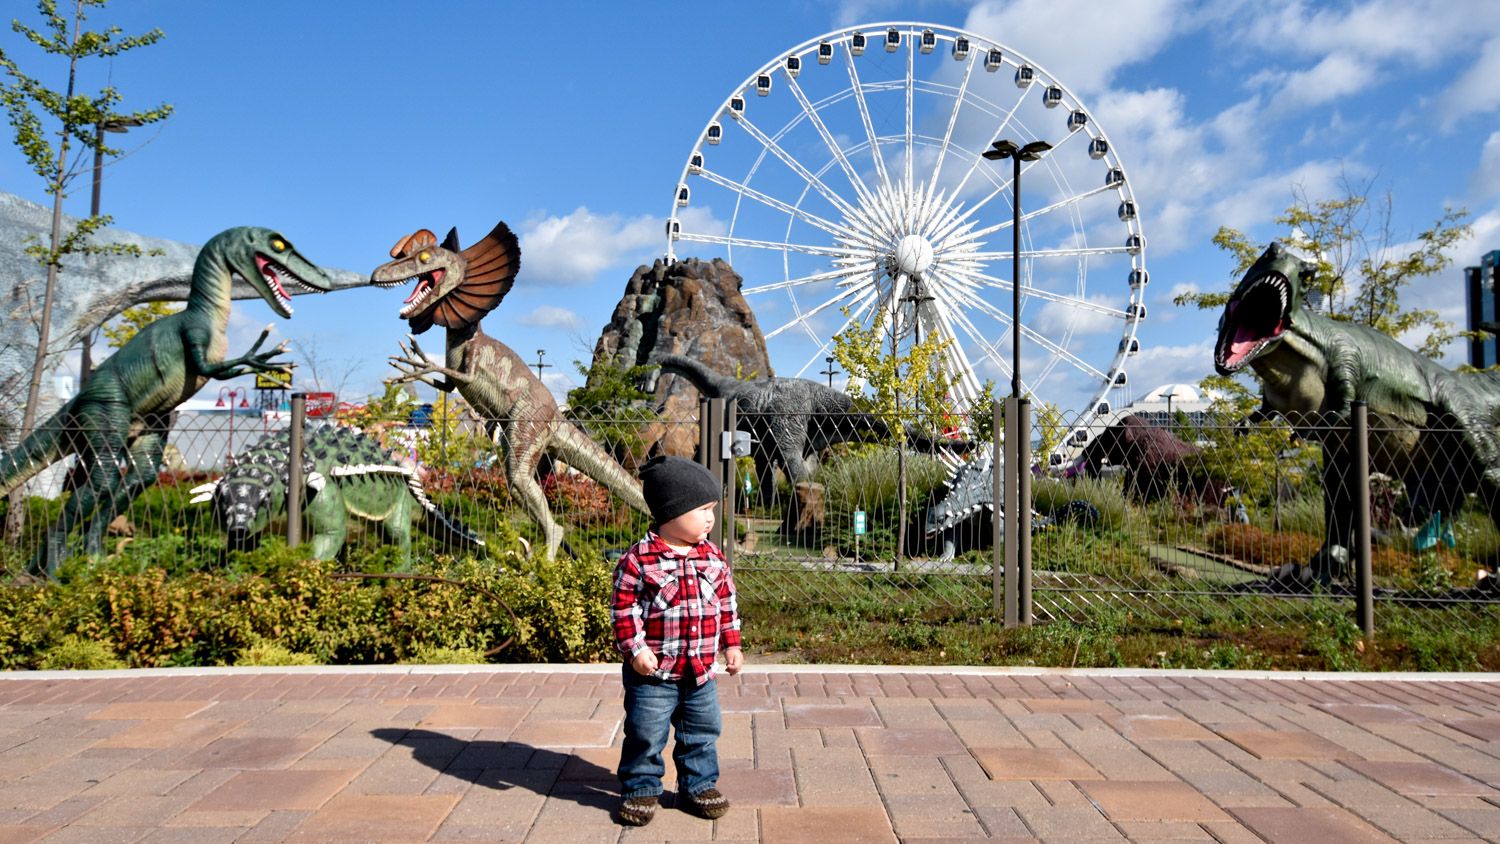 Image: As a child, I would photograph anything that grabbed my attention and made me look. Dinosaurs...